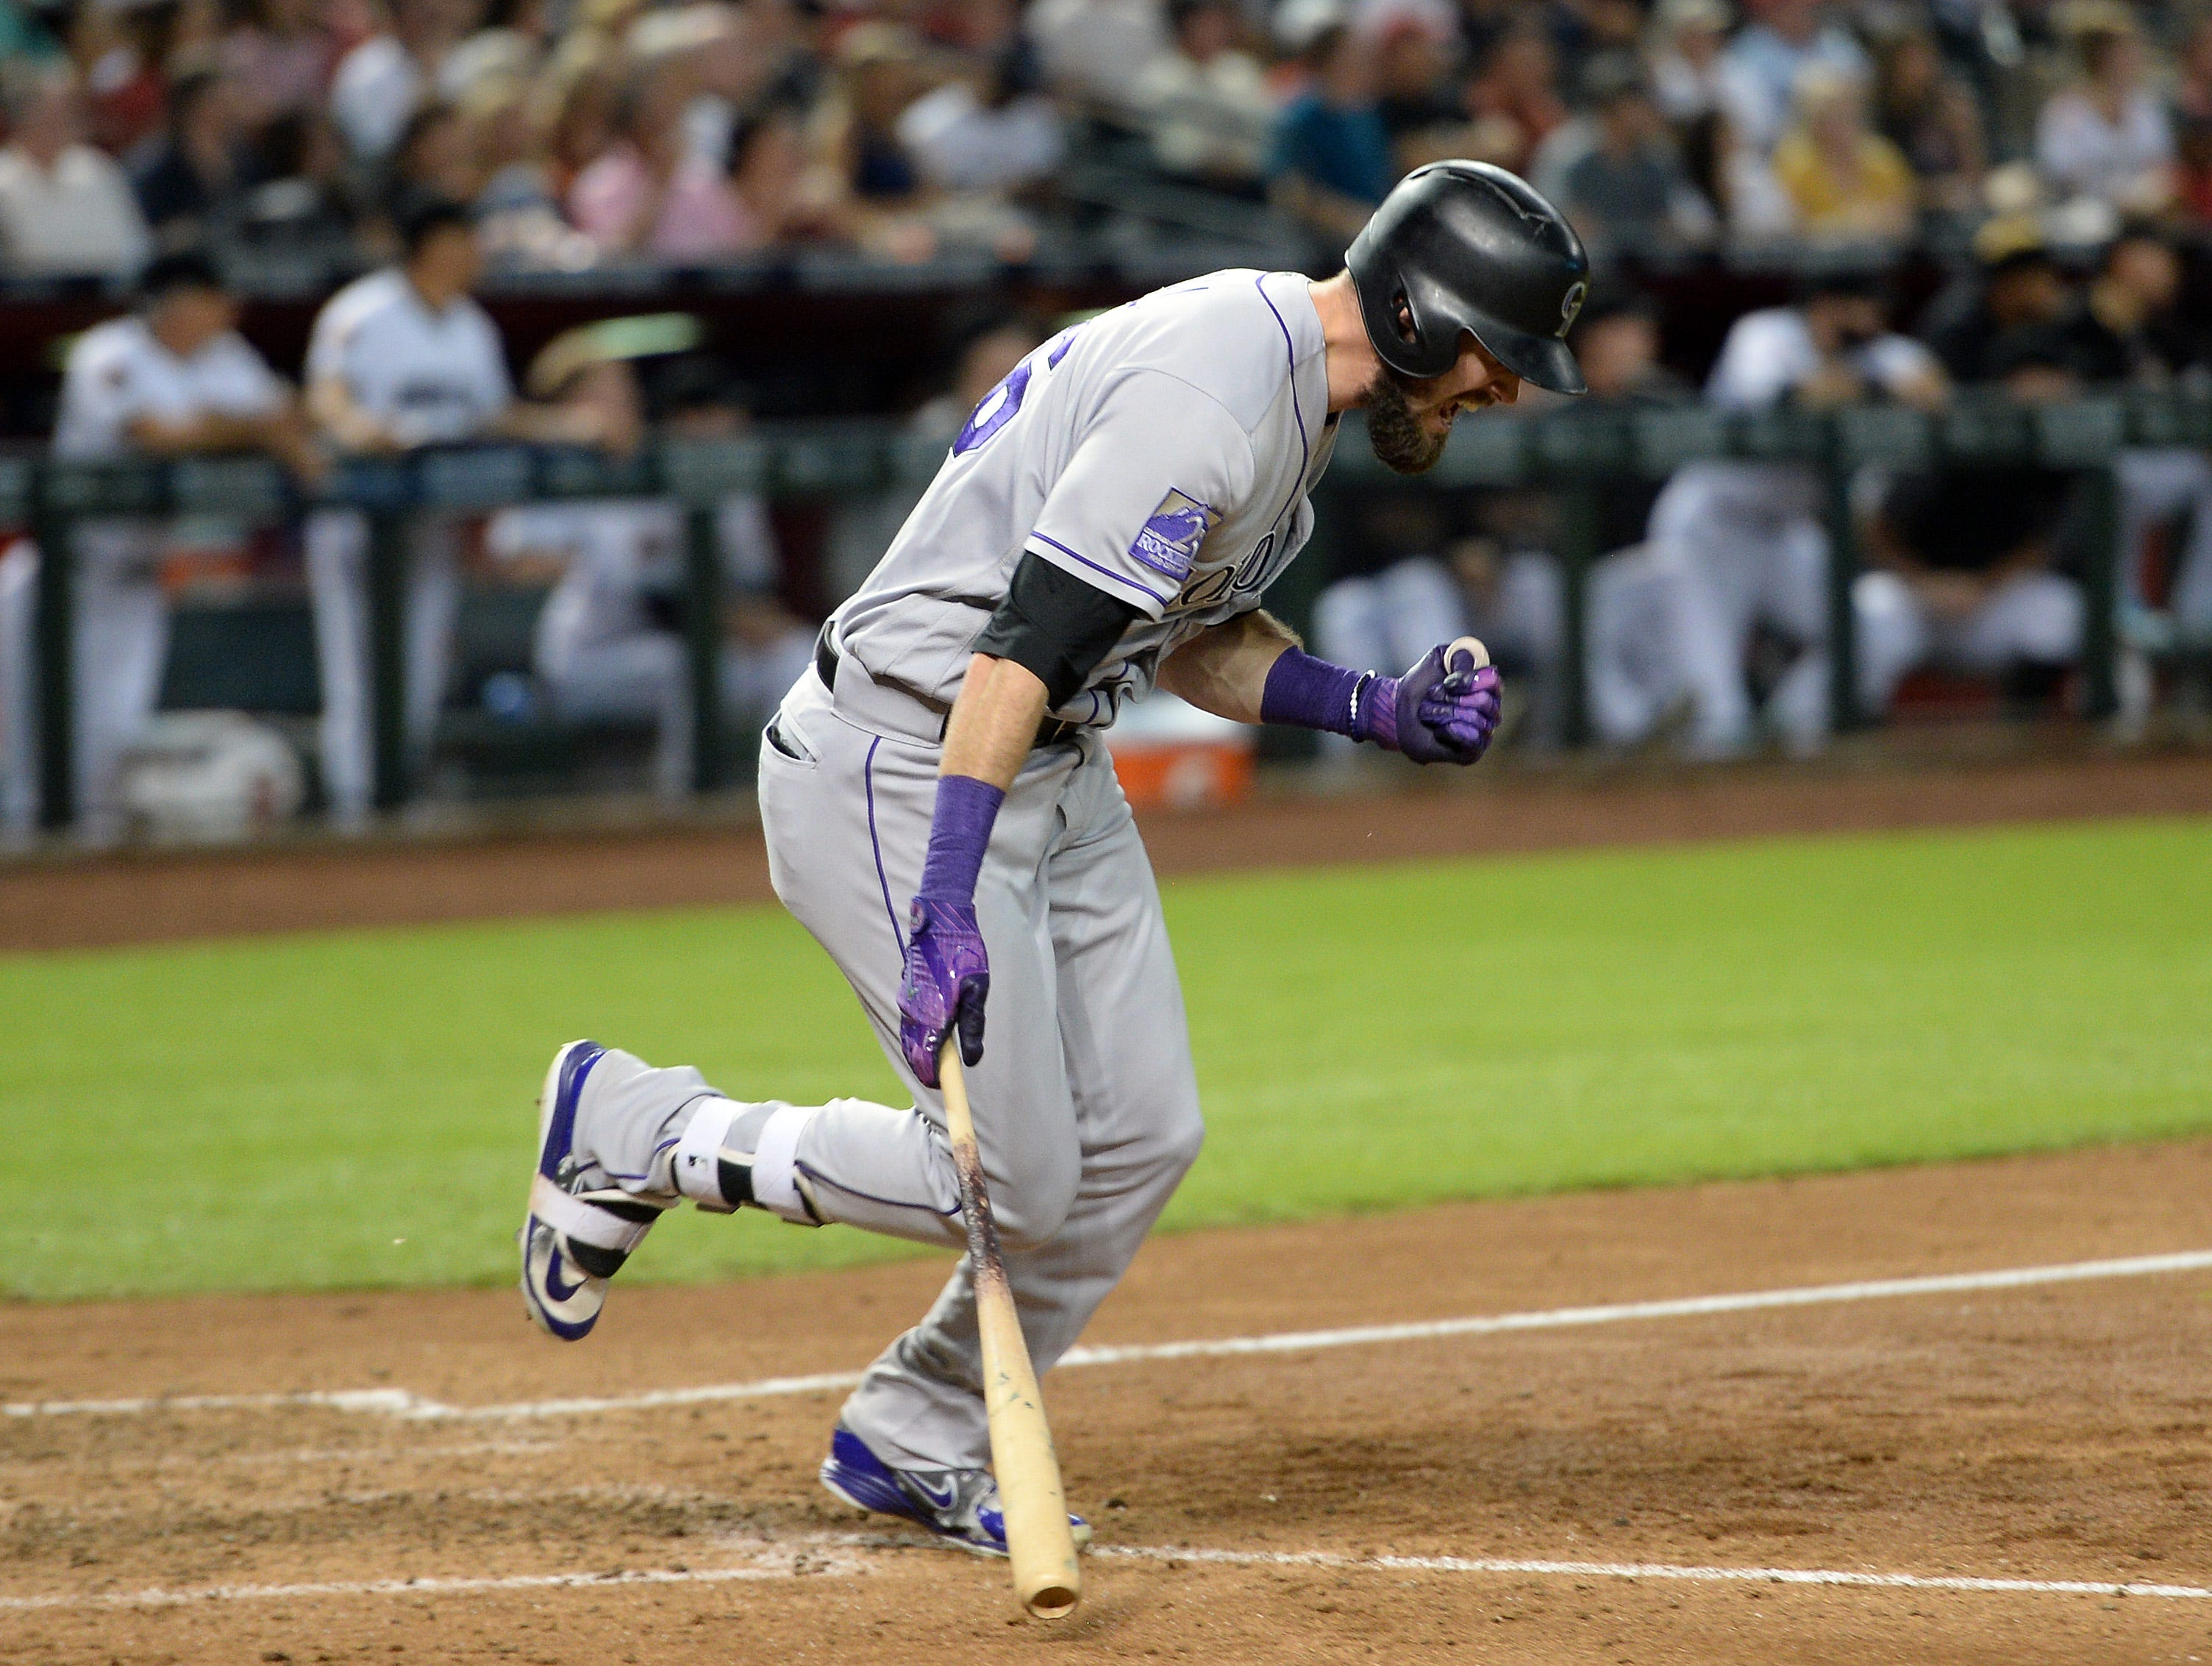 Sep 21, 2018; Phoenix, AZ, USA; Colorado Rockies left fielder David Dahl (26) pumps his fist after hitting an RBI single against the Arizona Diamondbacks during the eighth inning at Chase Field.